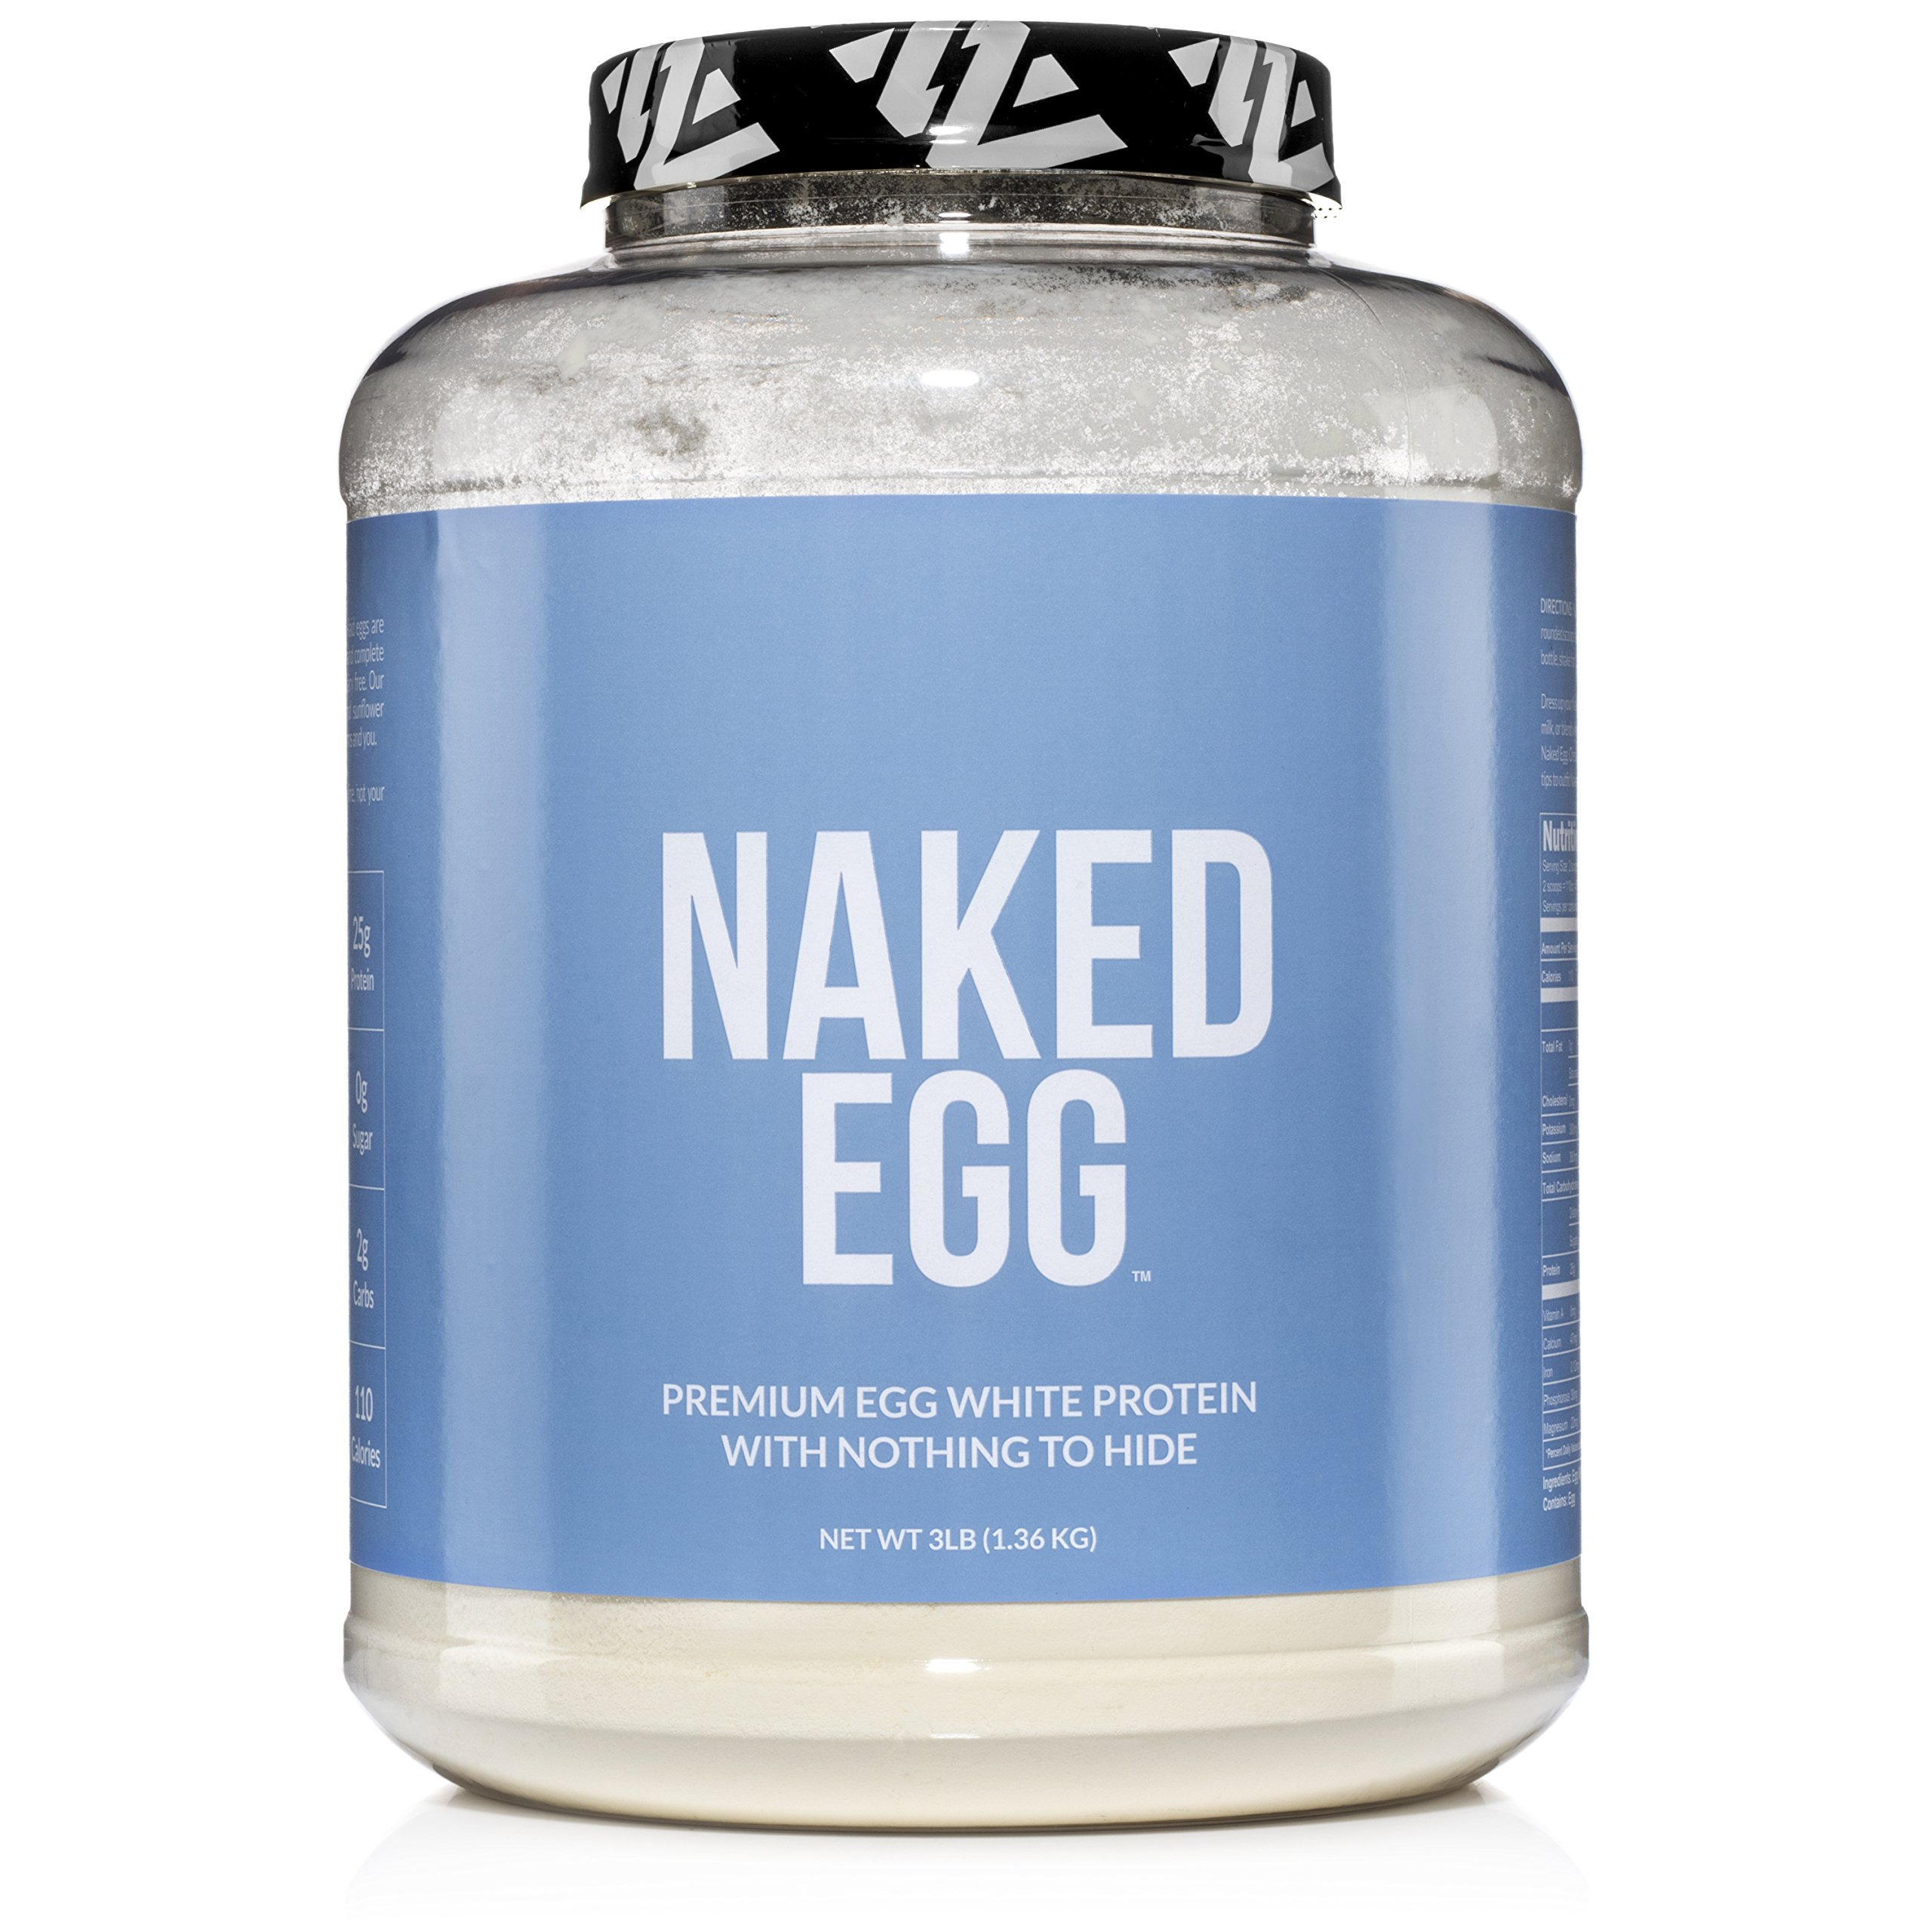 NAKED EGG - 3LB Non-GMO Egg White Protein Powder from US Farms - Bulk, No Additives, Paleo, Dairy Free, Gluten Free, Soy Free - 25g Protein, 44 Servings by NAKED nutrition